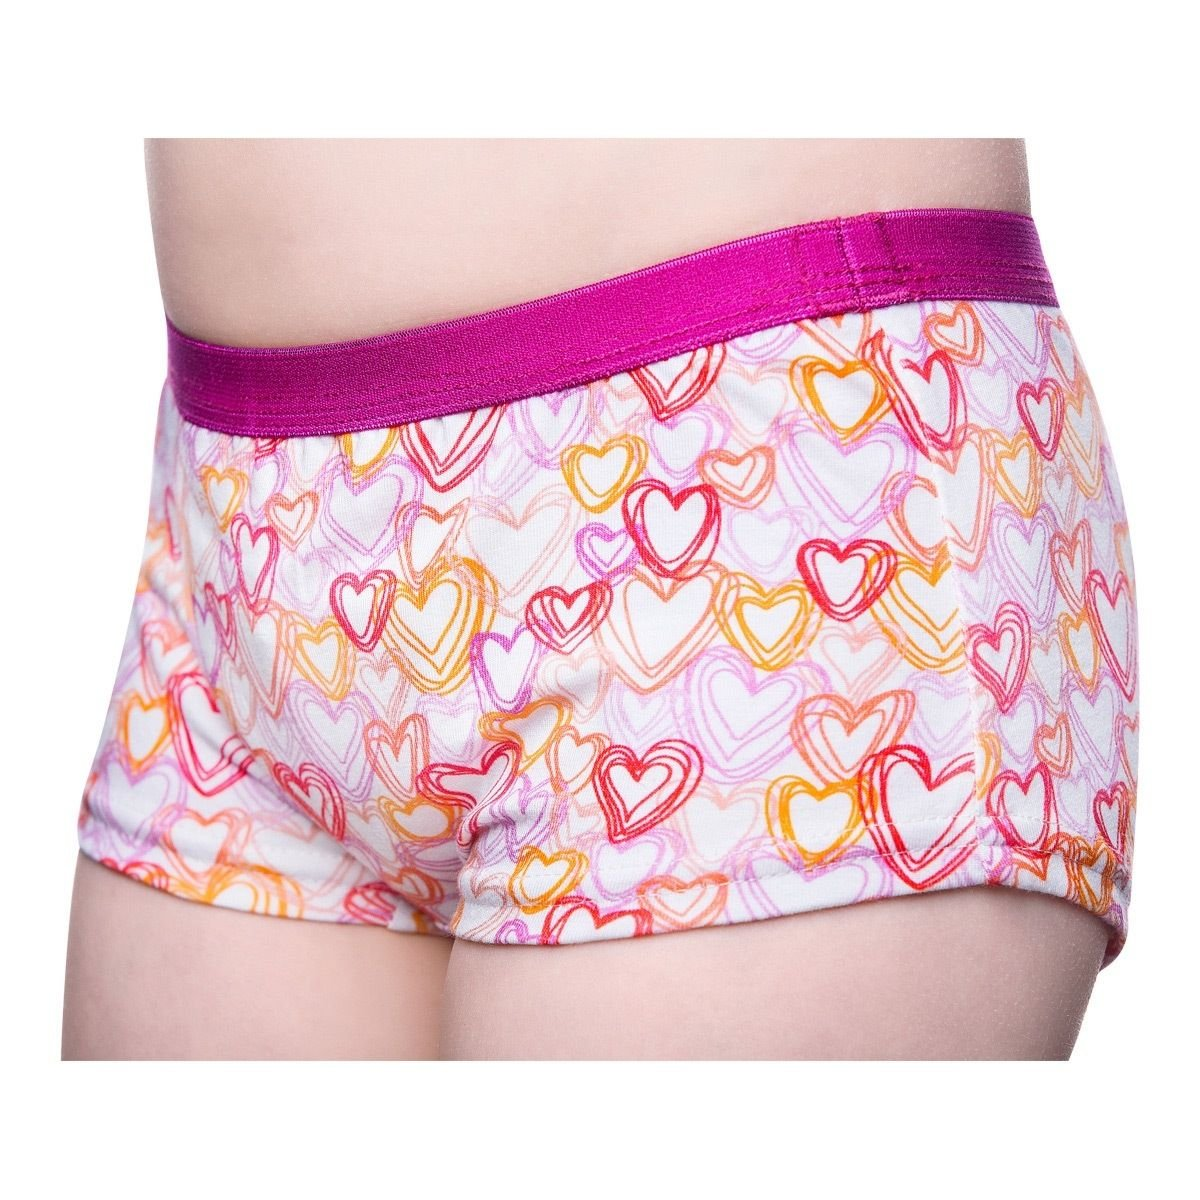 HEARTS – INCONTINENCE BRIEFS HEARTS - INCONTINENCE BRIEFS DRY AND COOL